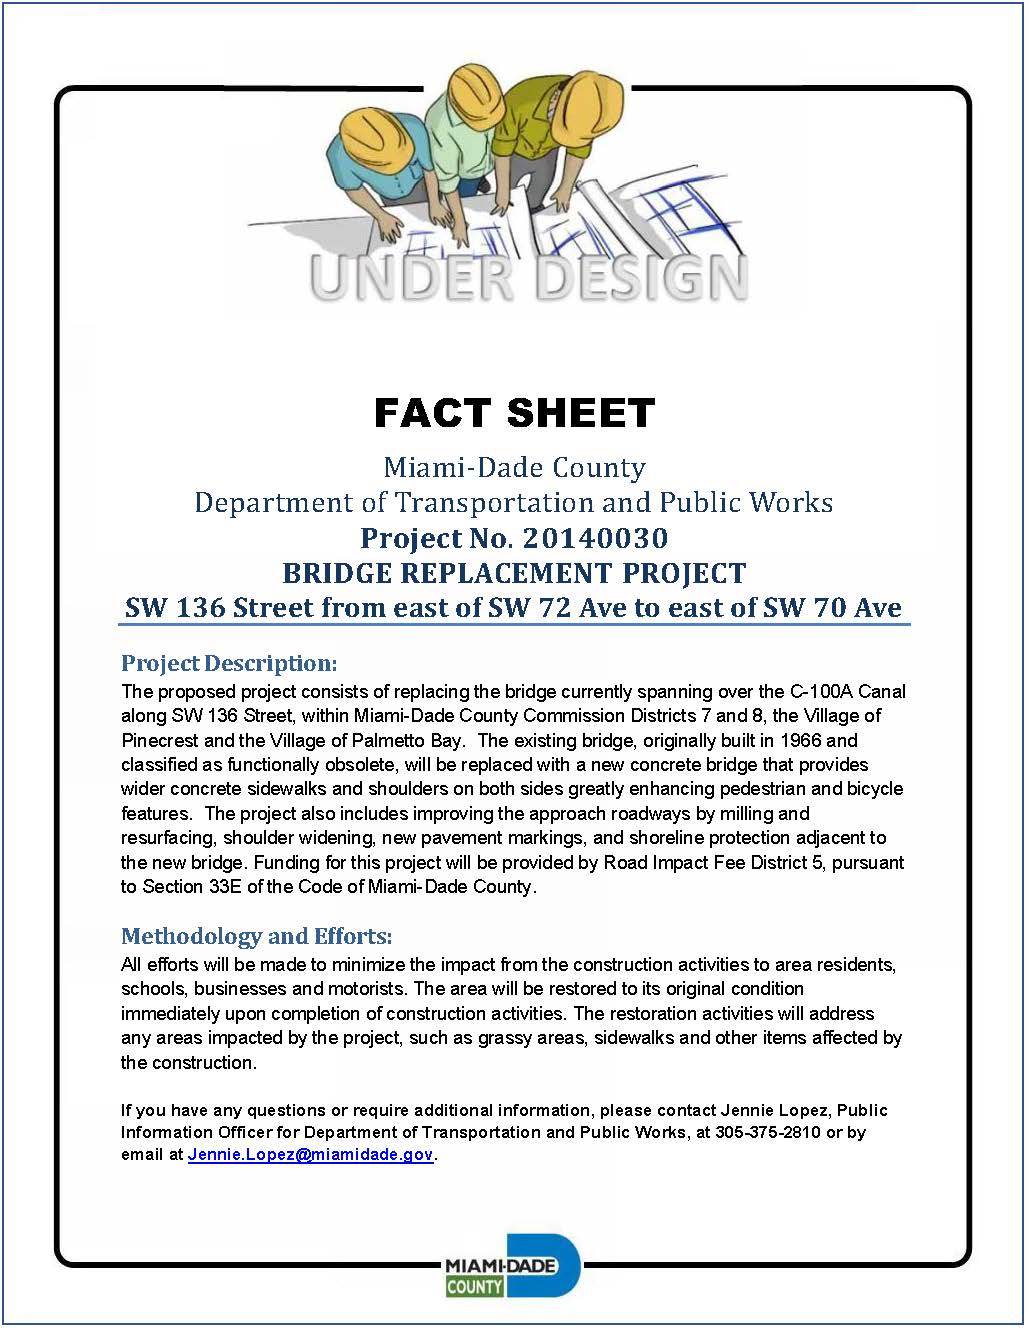 FACT SHEET SW 136 Street Bridge Replacement Project